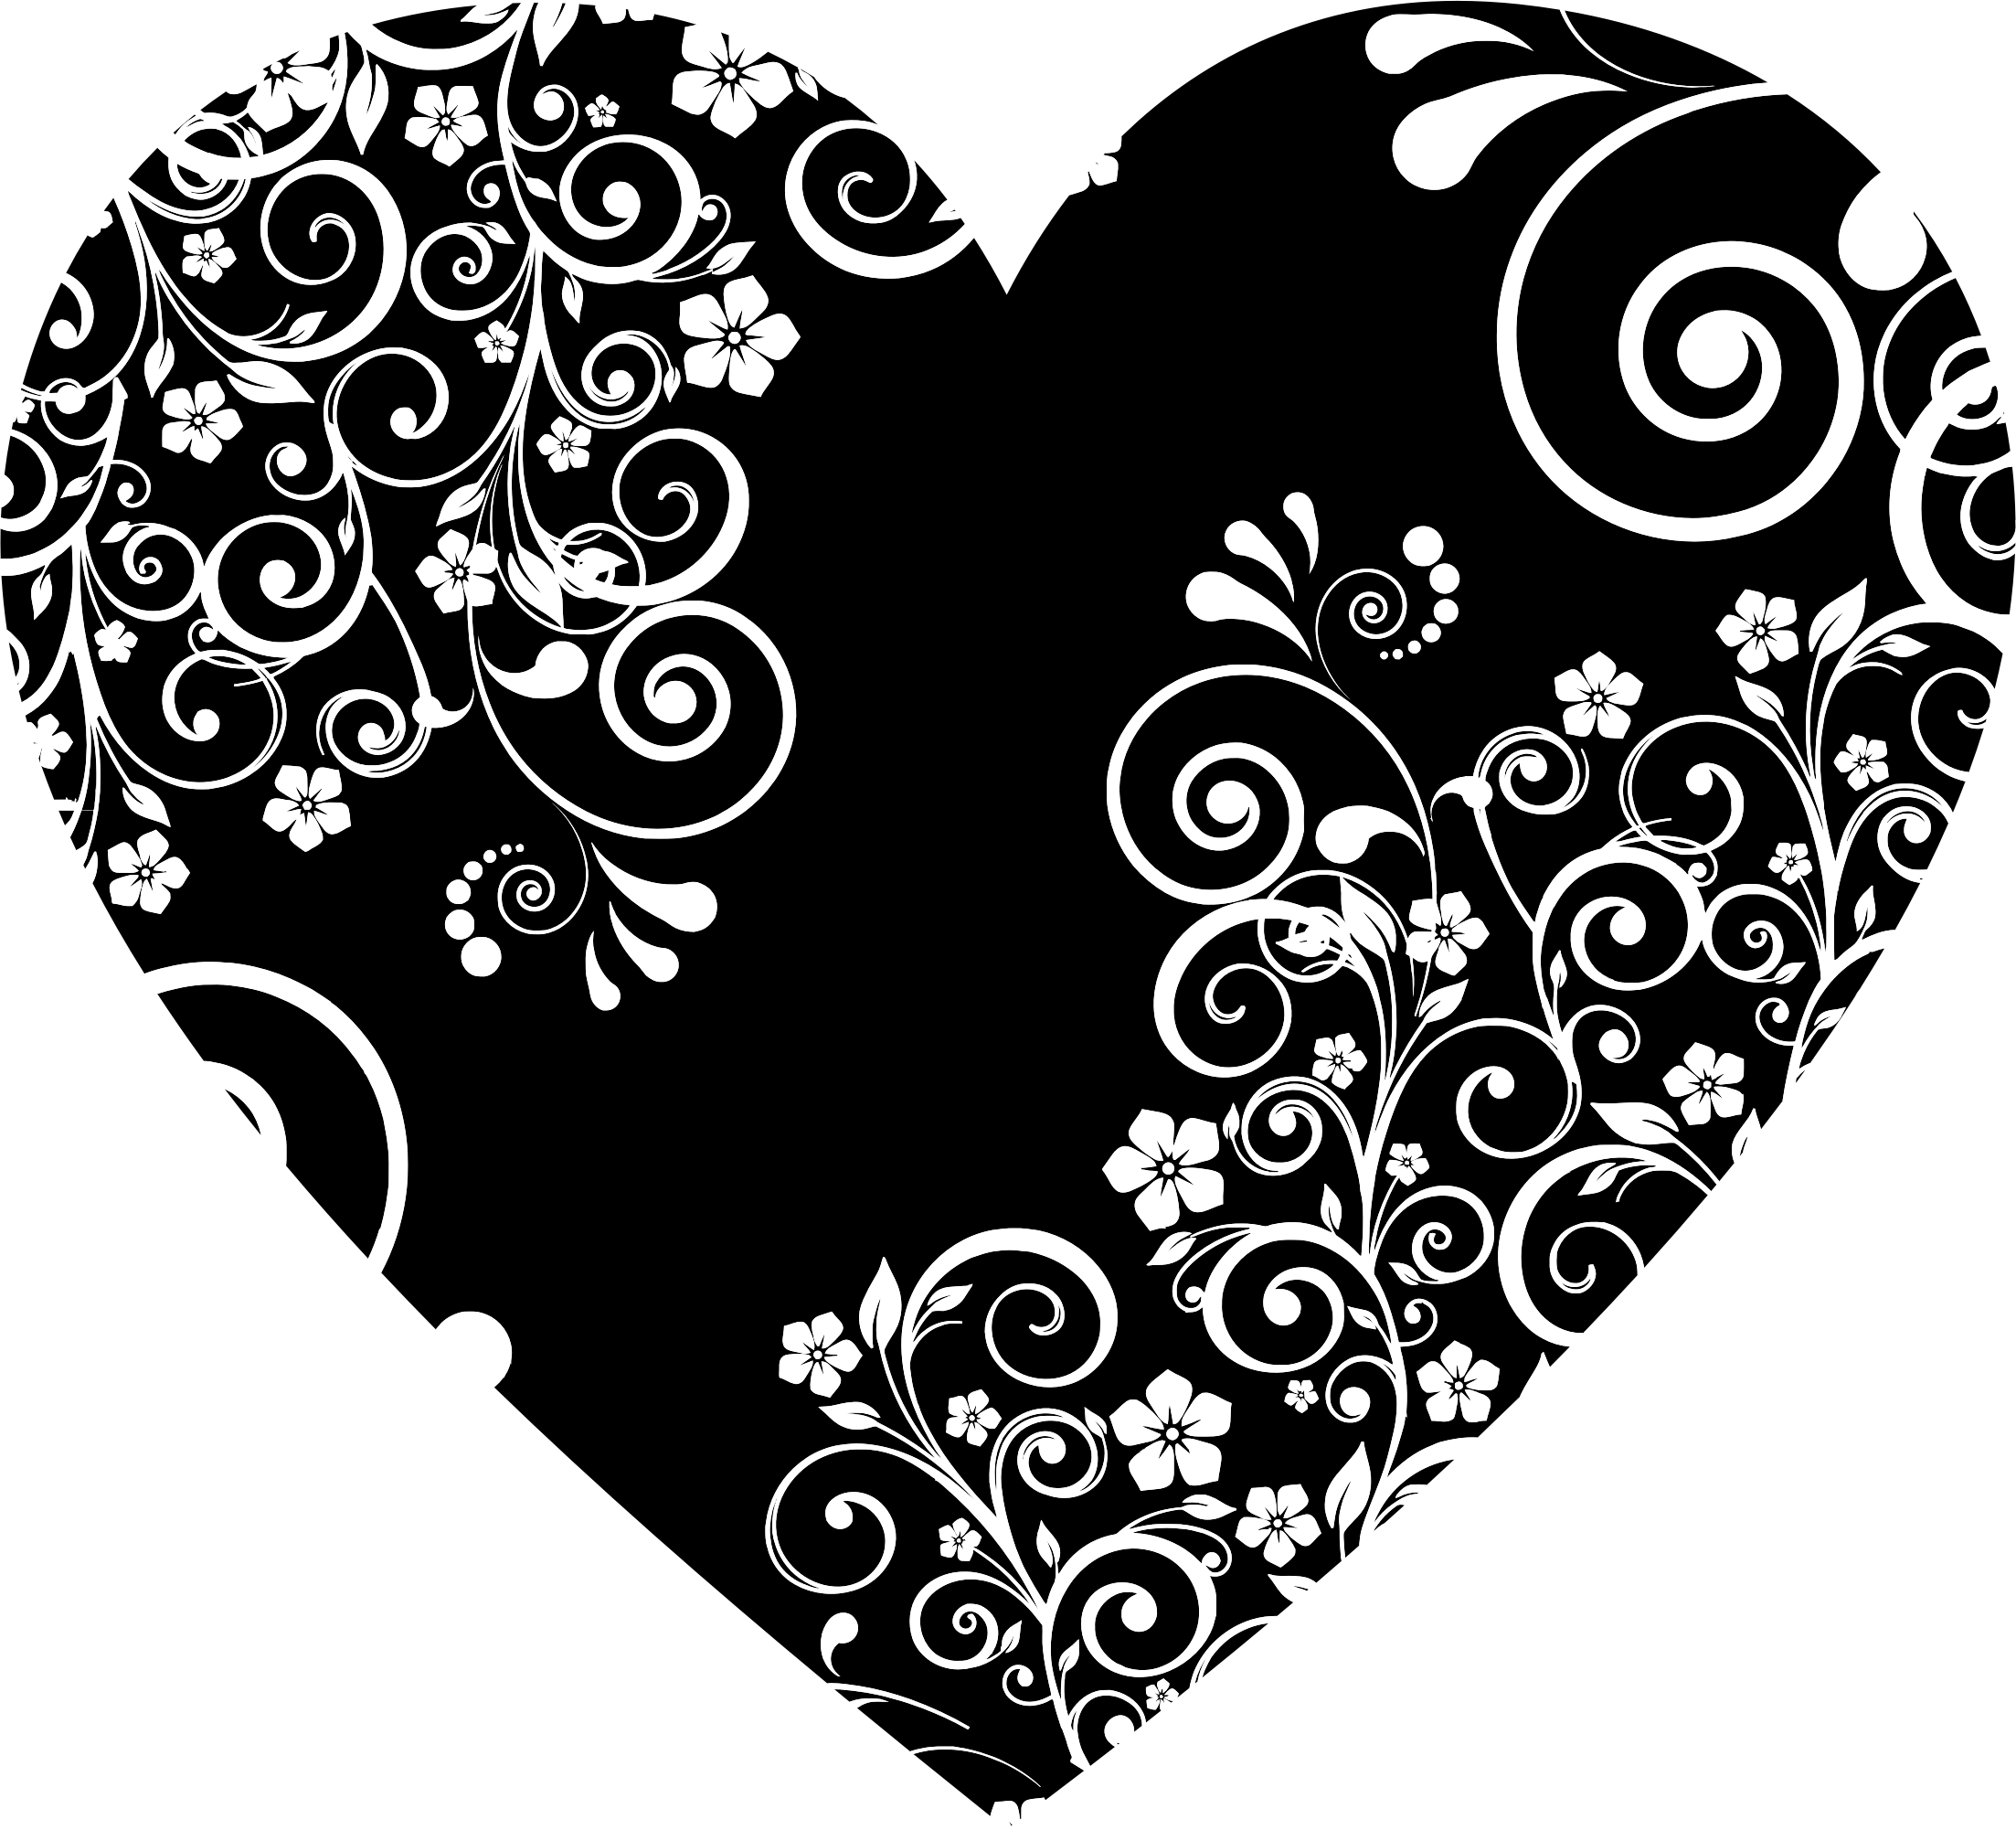 Floral Flourish Heart 3 by GDJ